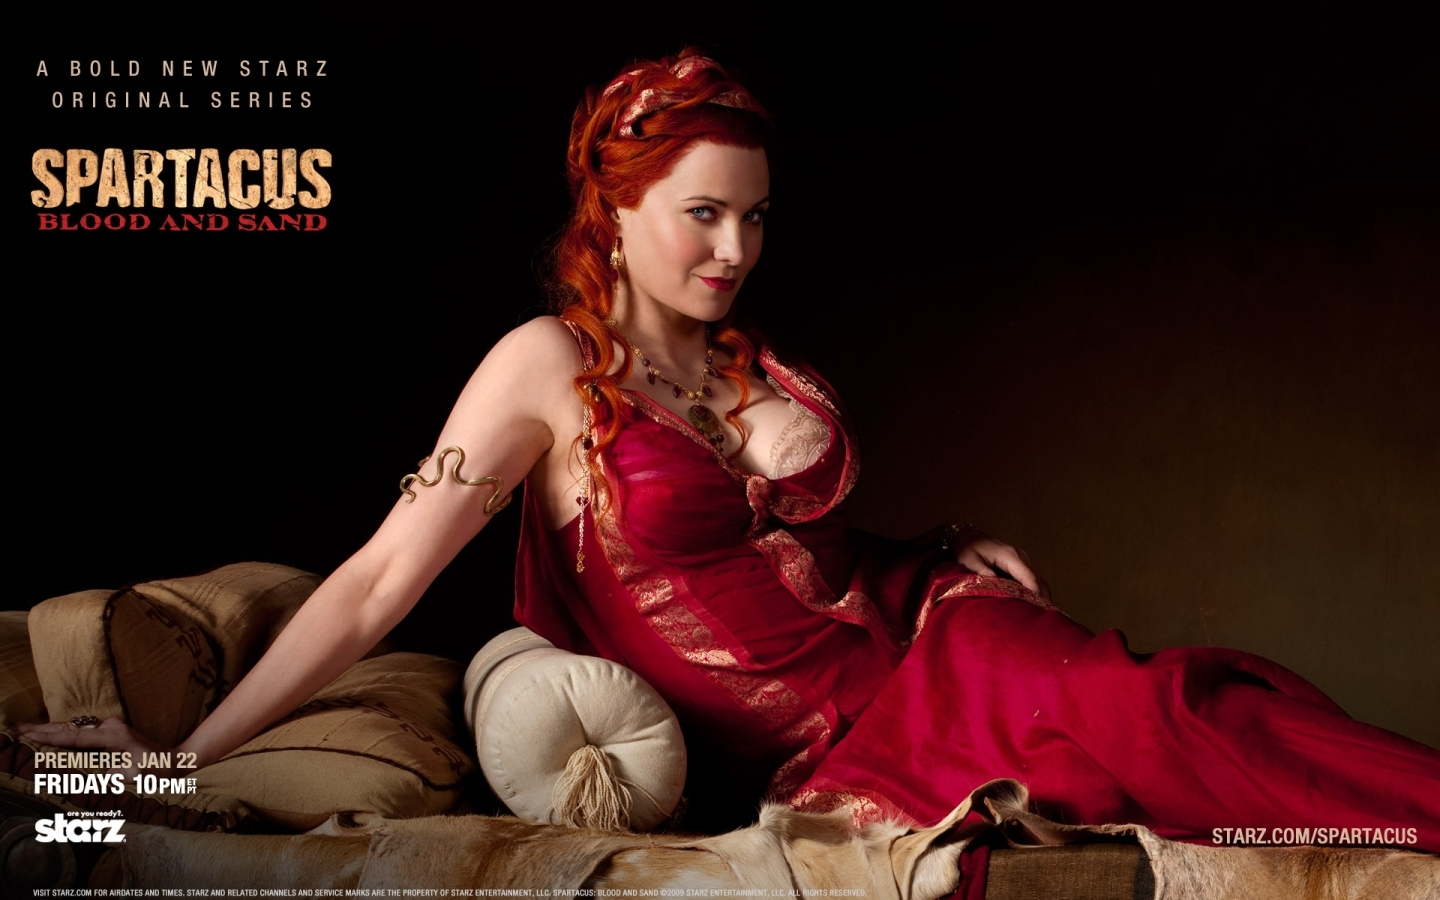 Download Lucretia Spartacus Blood and Sand Wallpaper : Widescreen : 1152 x 720 | 1280 x 800 ...